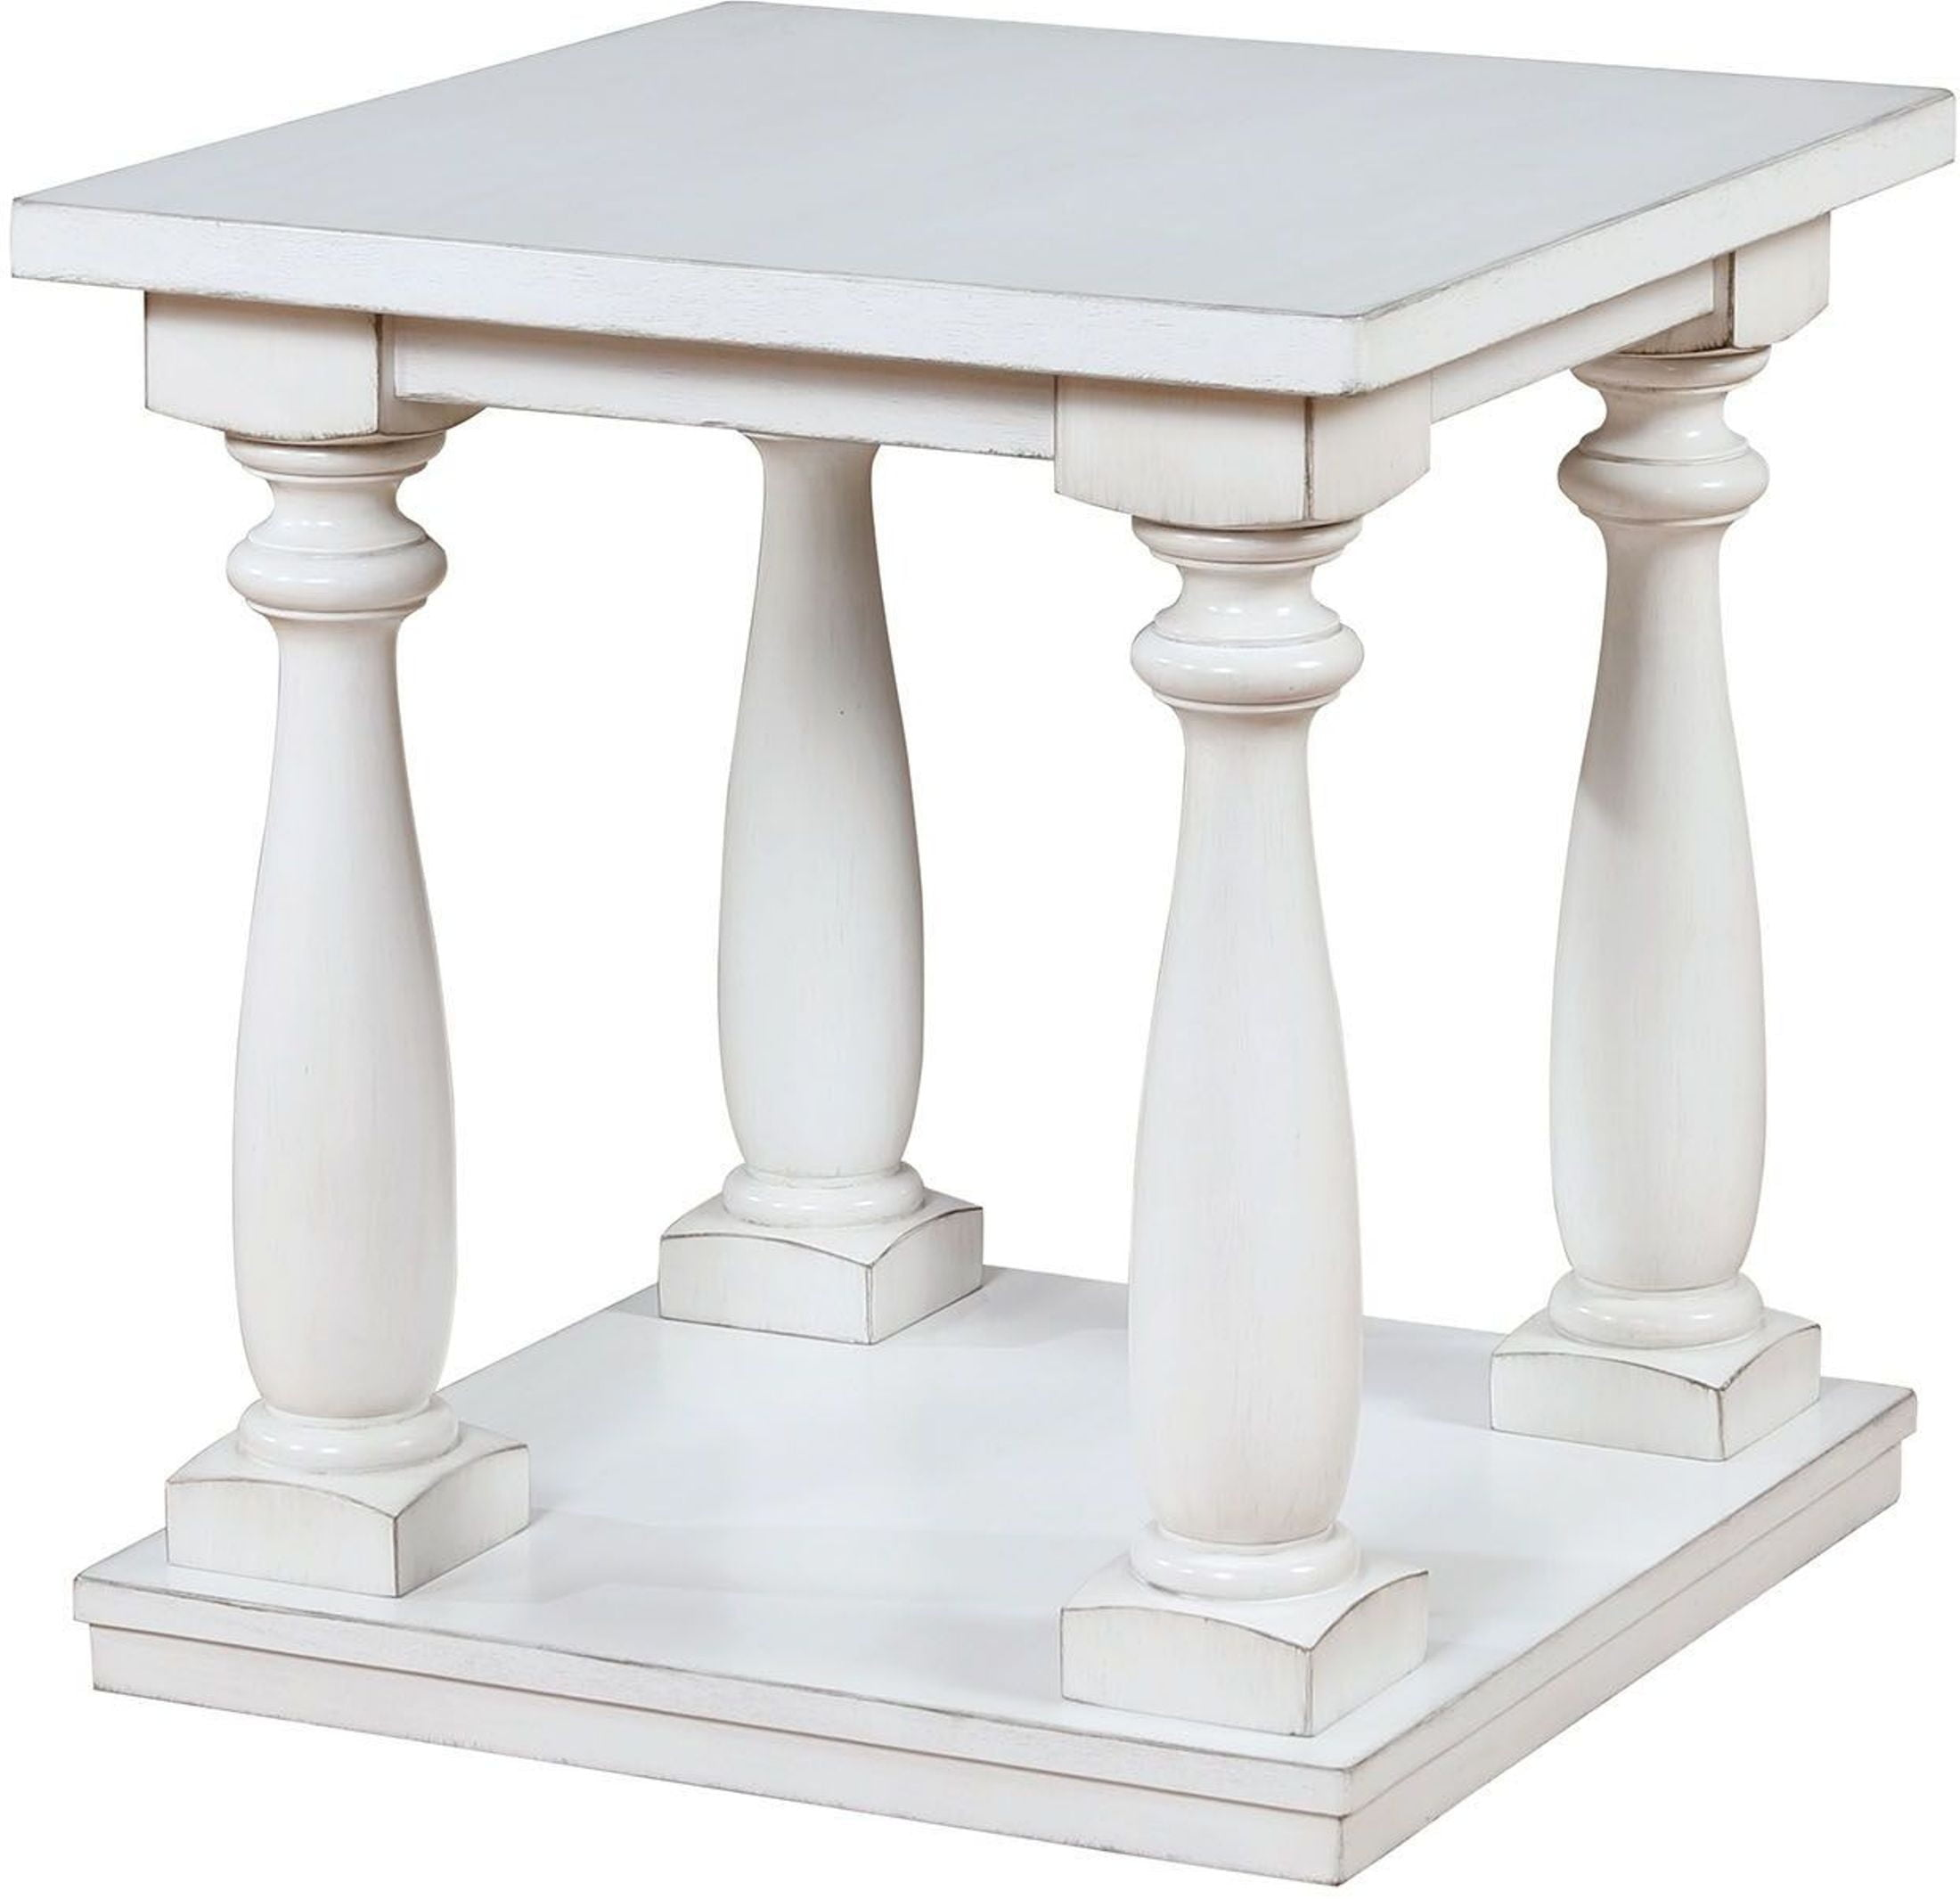 Tammie Antique White End Table From Furniture Of America Coleman  # Muebles Luan Arbo